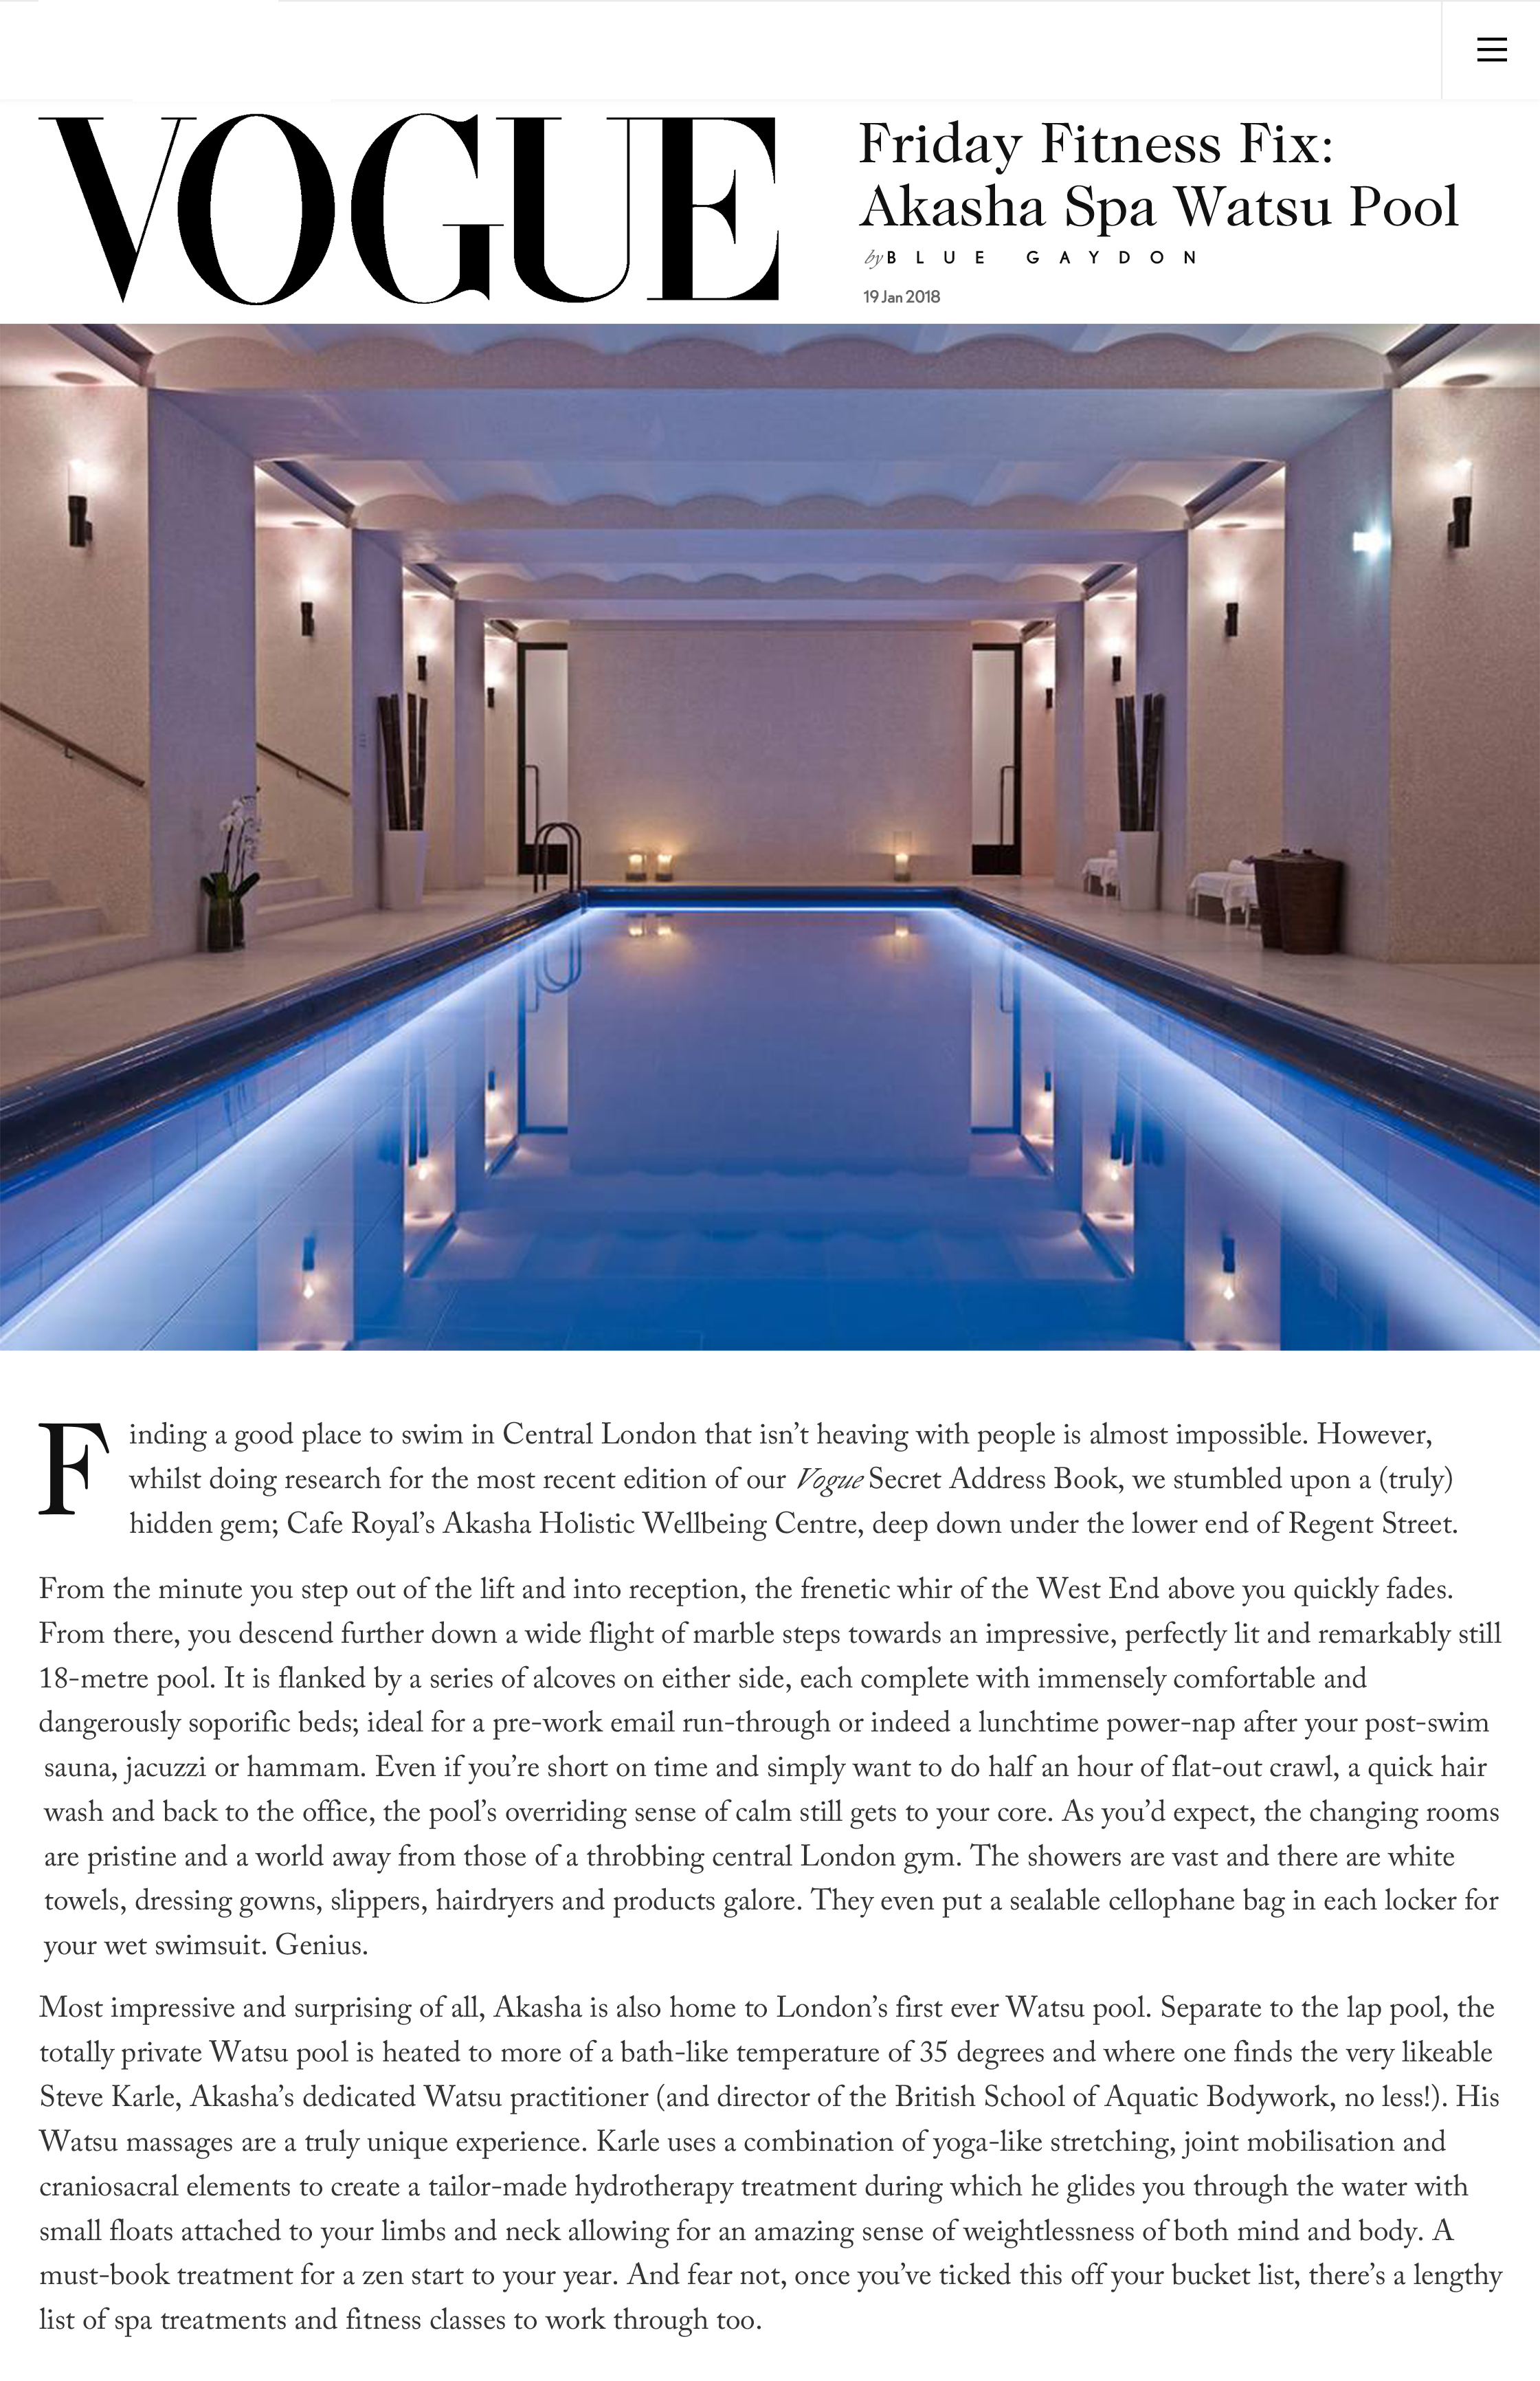 A truly unique experience and a must-book treatment. — VOGUE